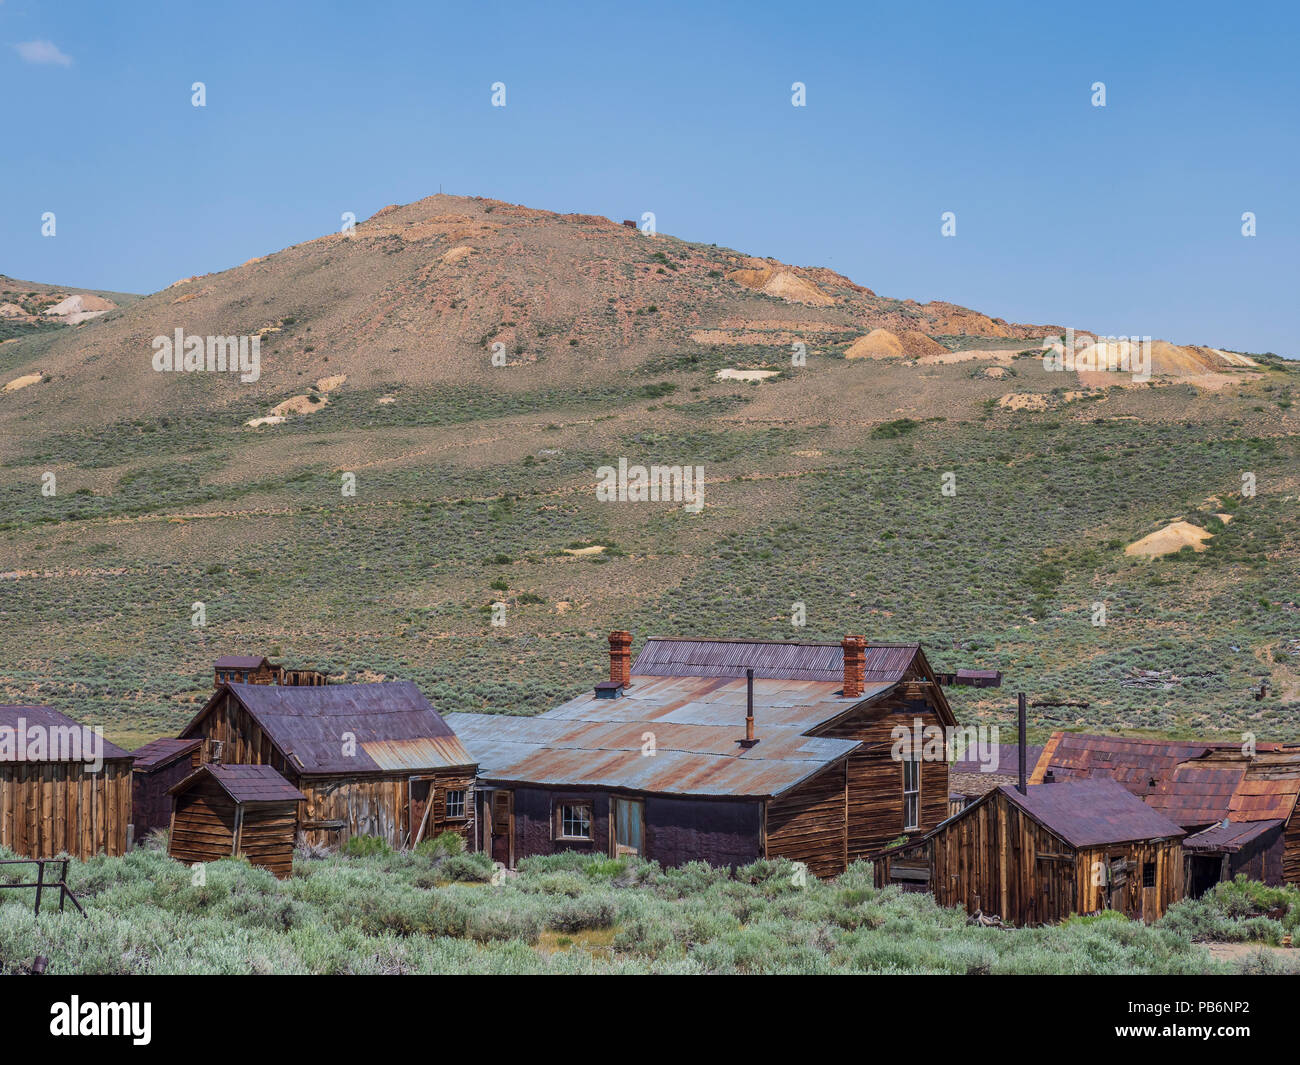 Homes and buildings, Bodie ghost town, Bodie State Historic Park, California. - Stock Image